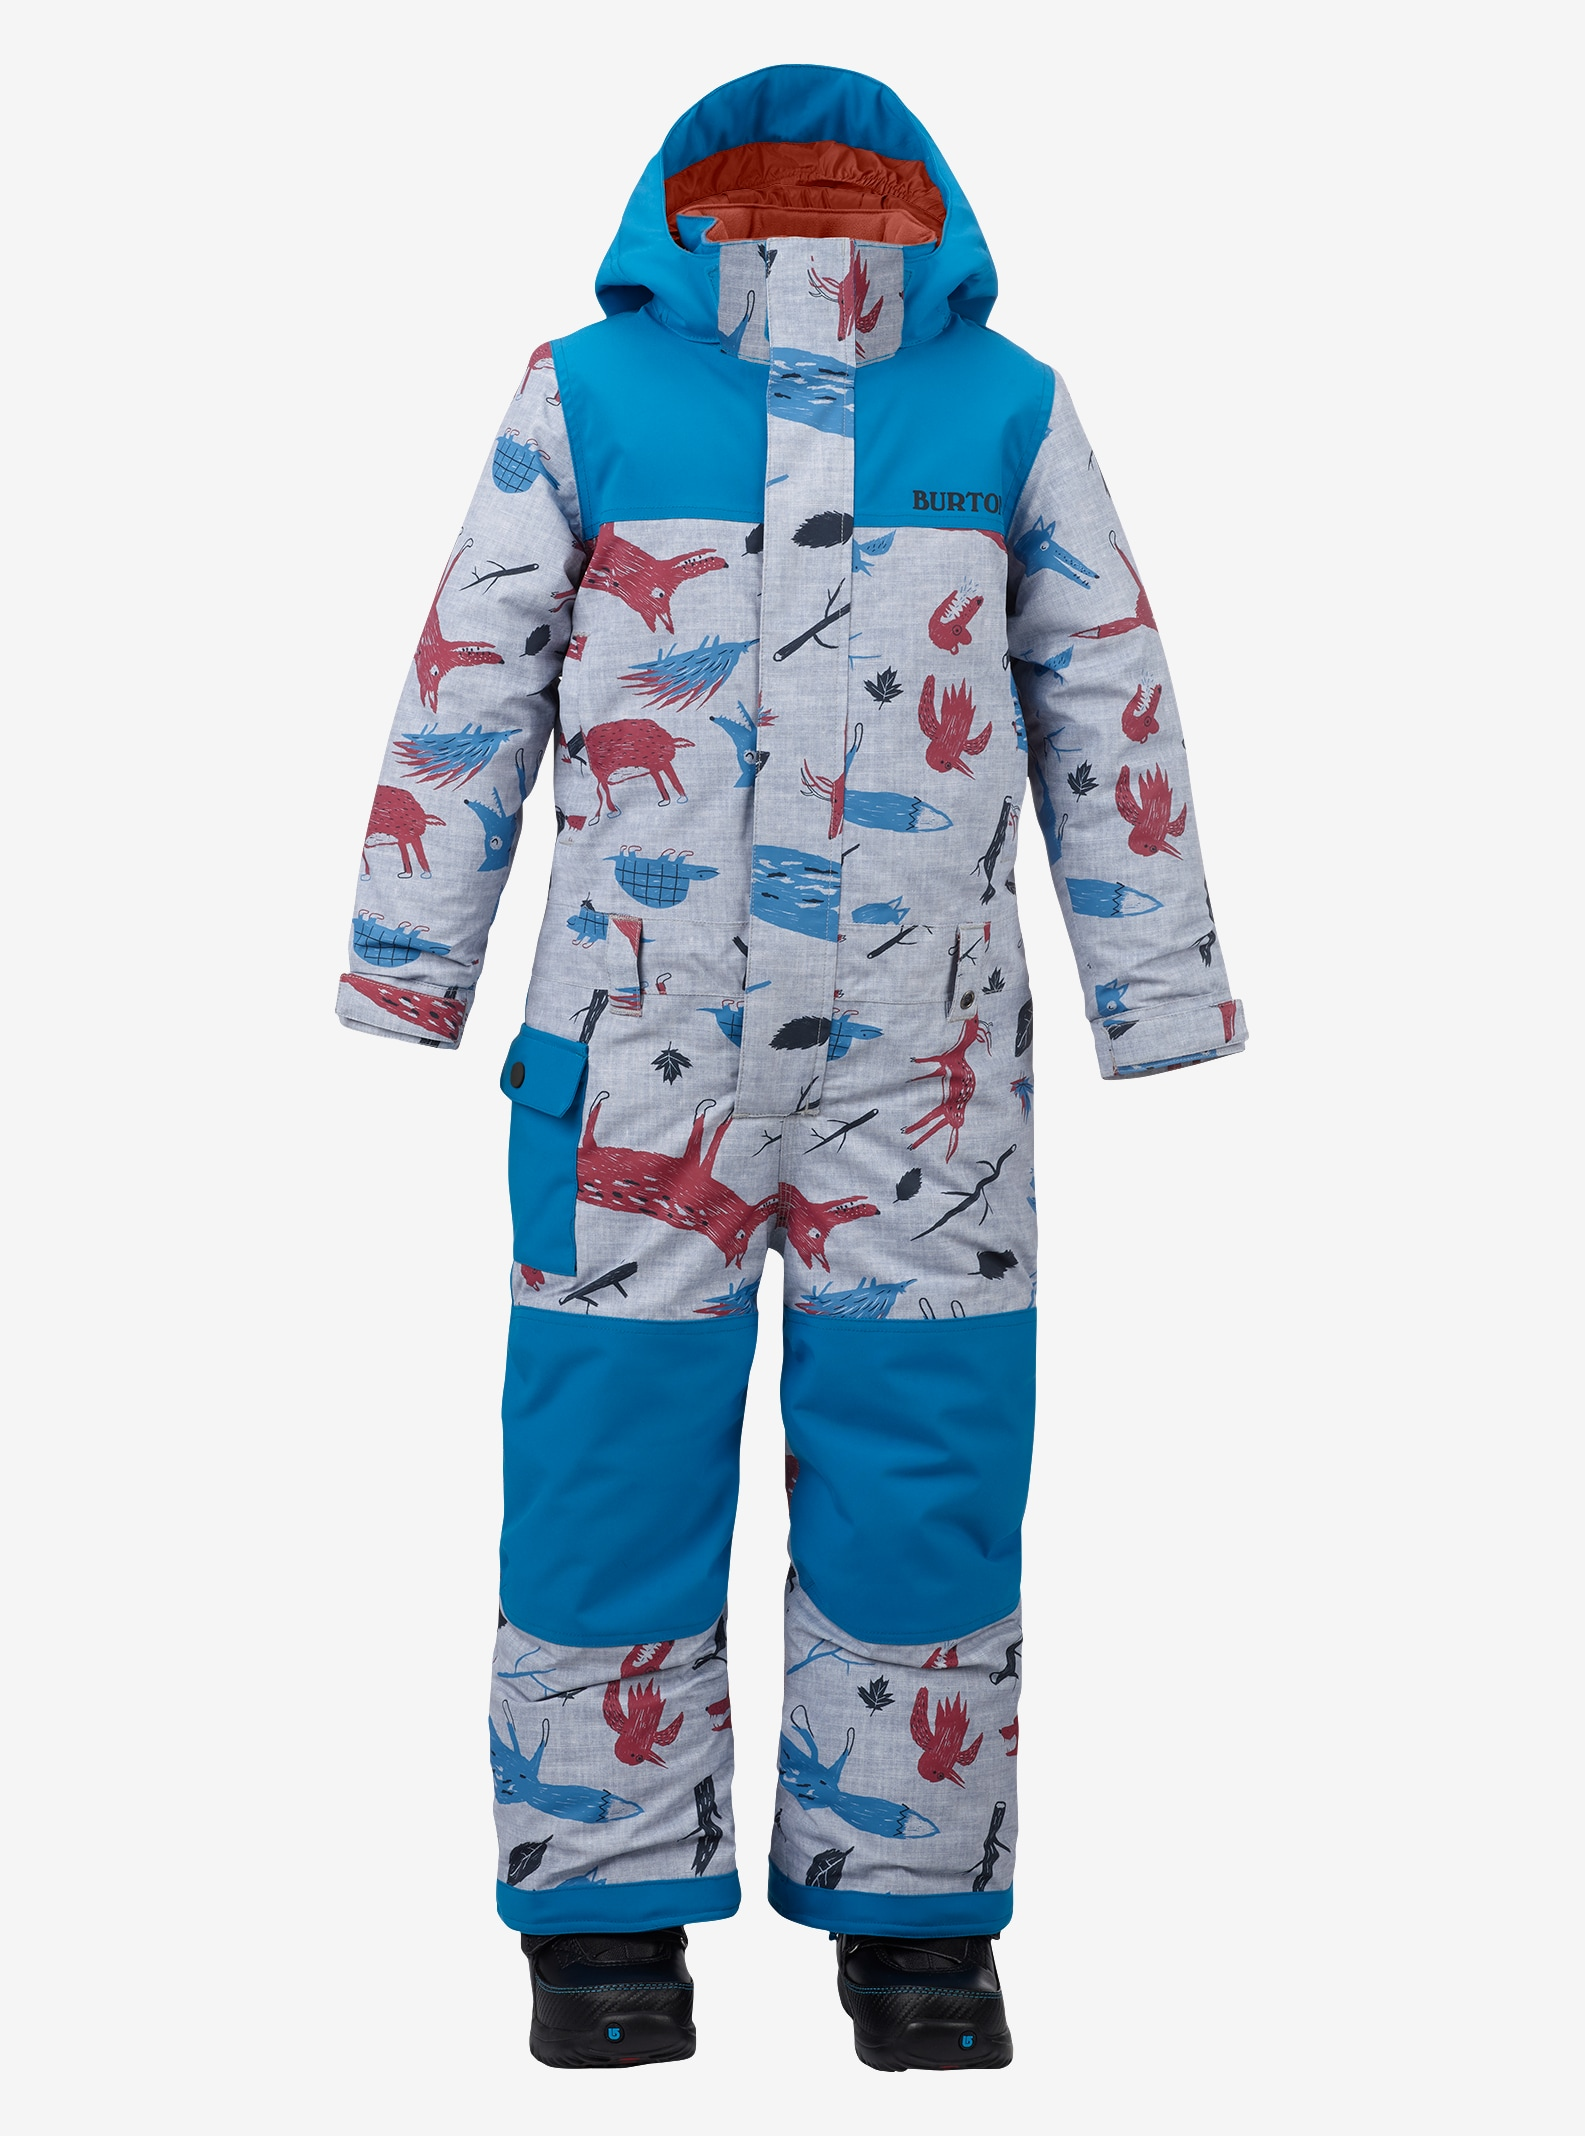 Boys' Burton Minishred Striker One Piece shown in Big Bad Wolf / Mountaineer